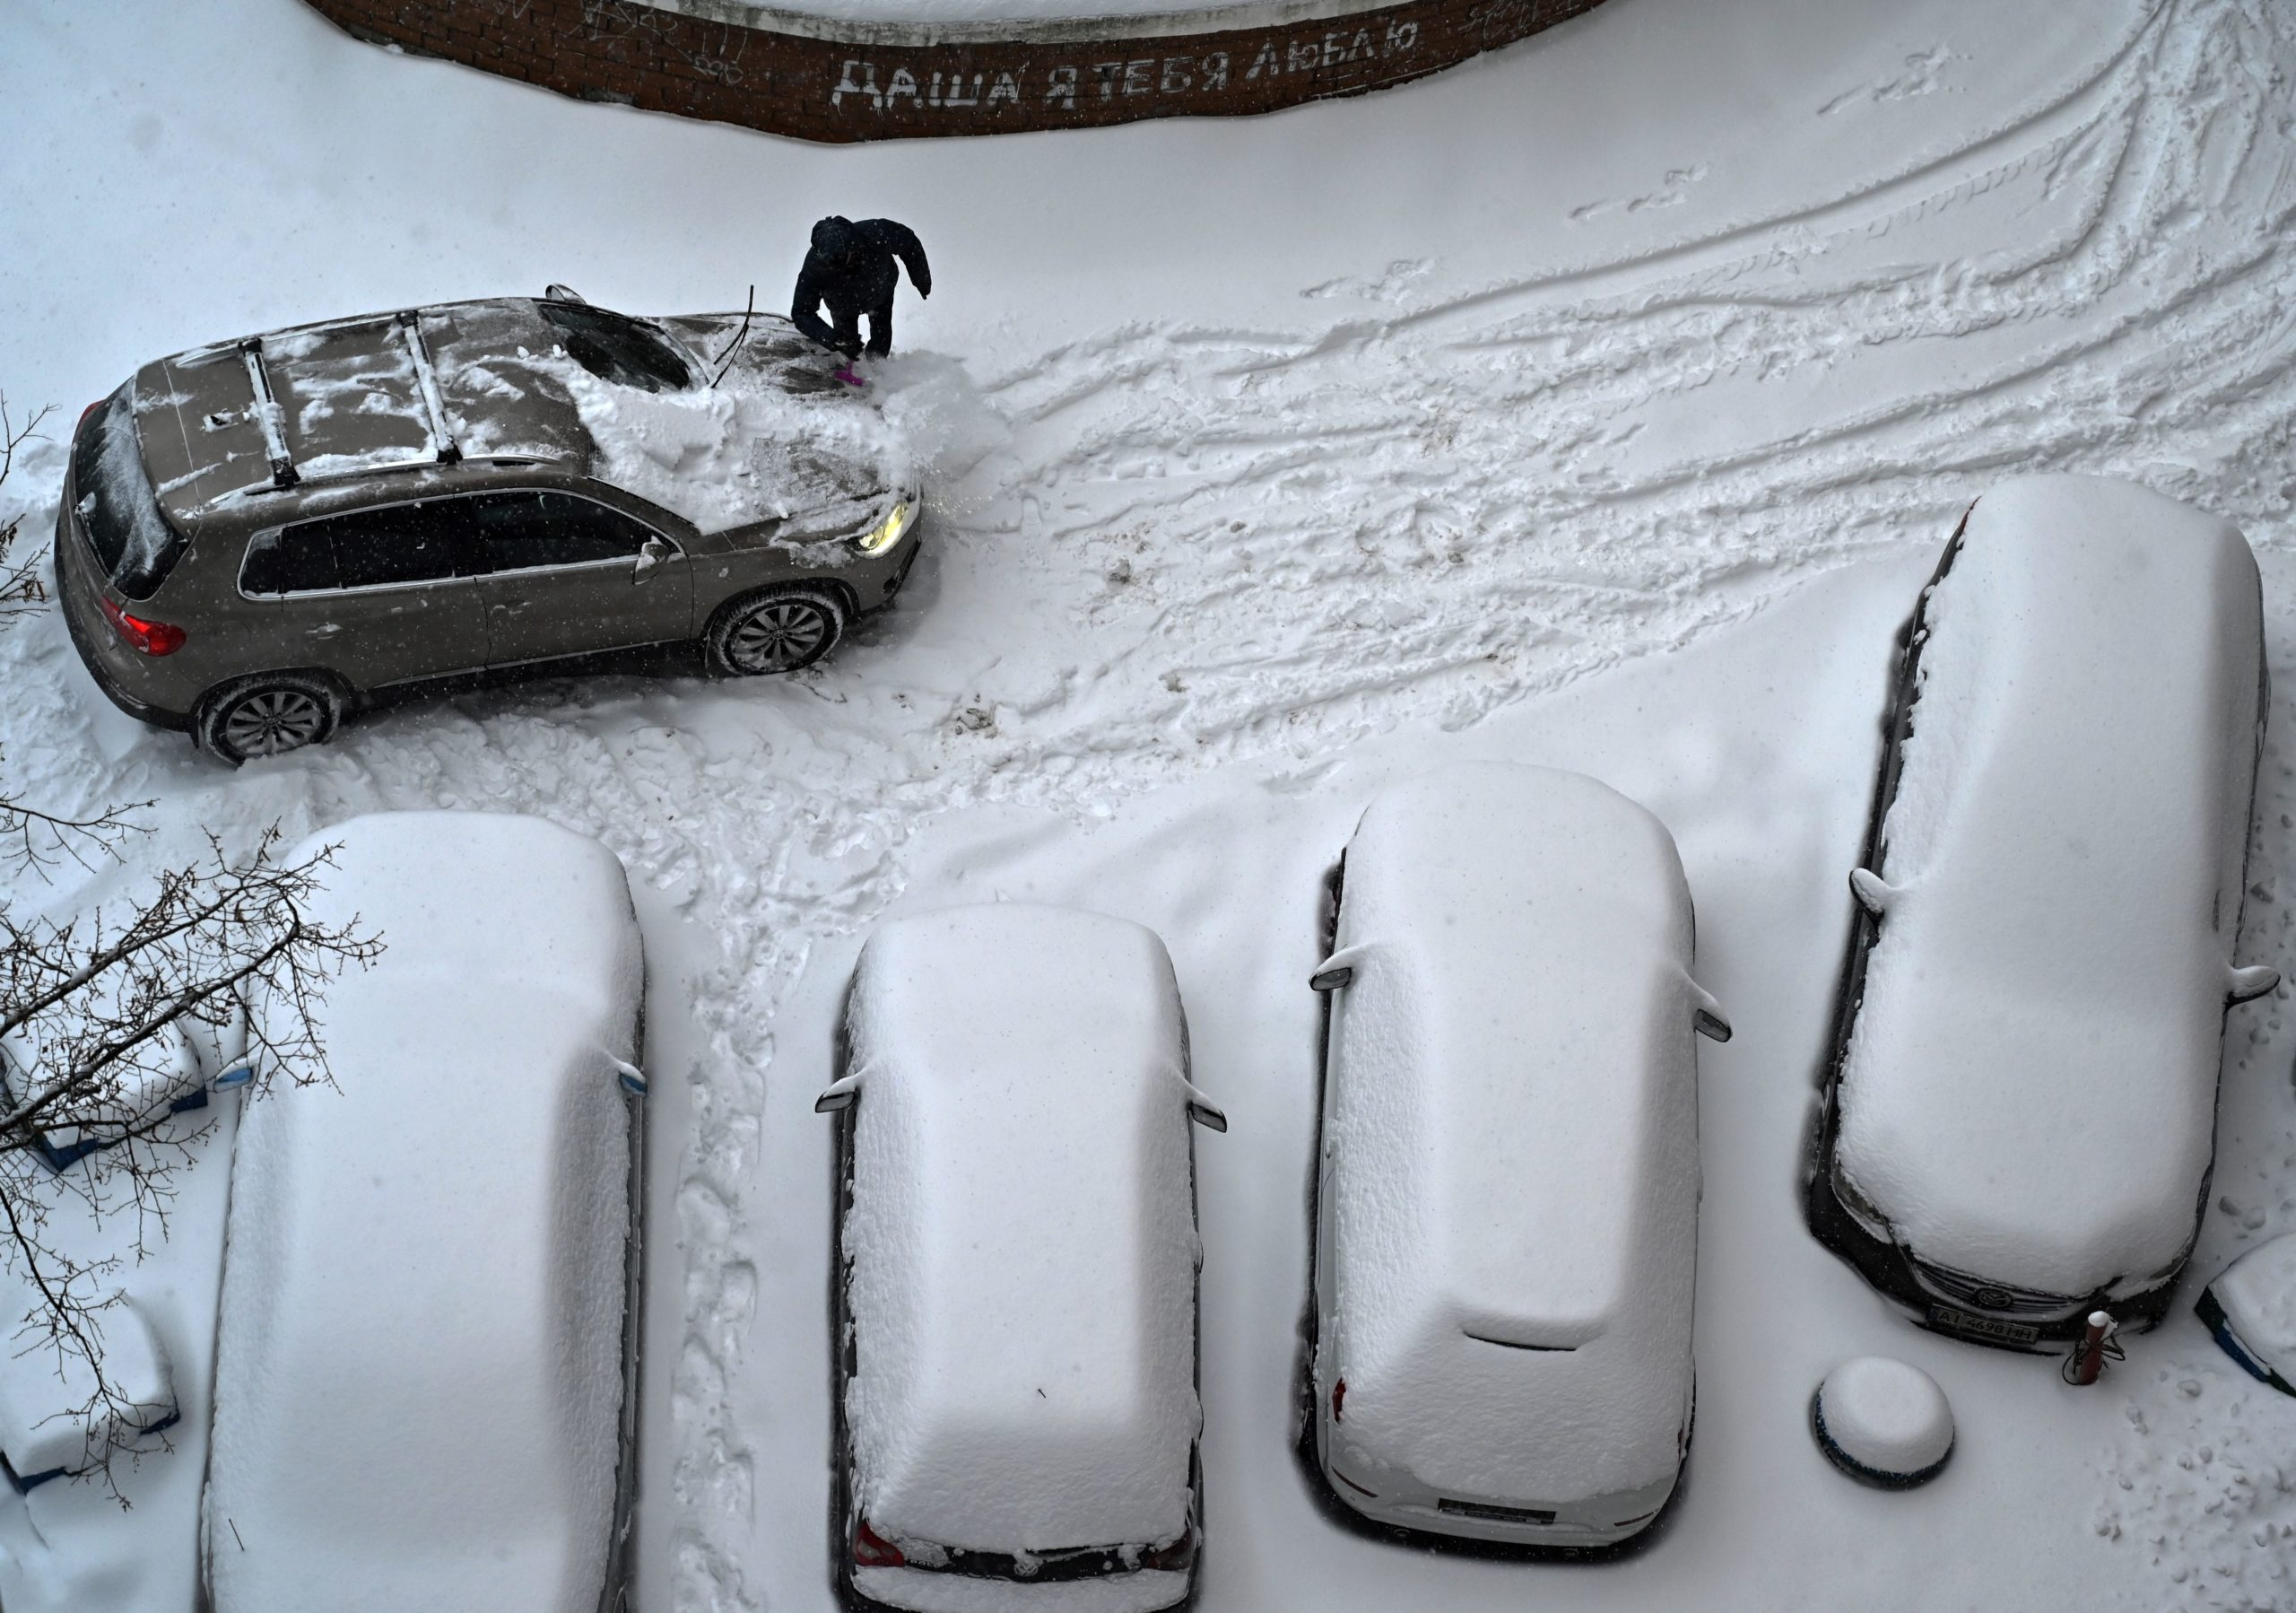 A man cleans his car from snow after a heavy night snowfall in the Ukrainian capital of Kiev on February 9, 2021. (Photo by Sergei SUPINSKY / AFP) (Photo by SERGEI SUPINSKY/AFP via Getty Images)